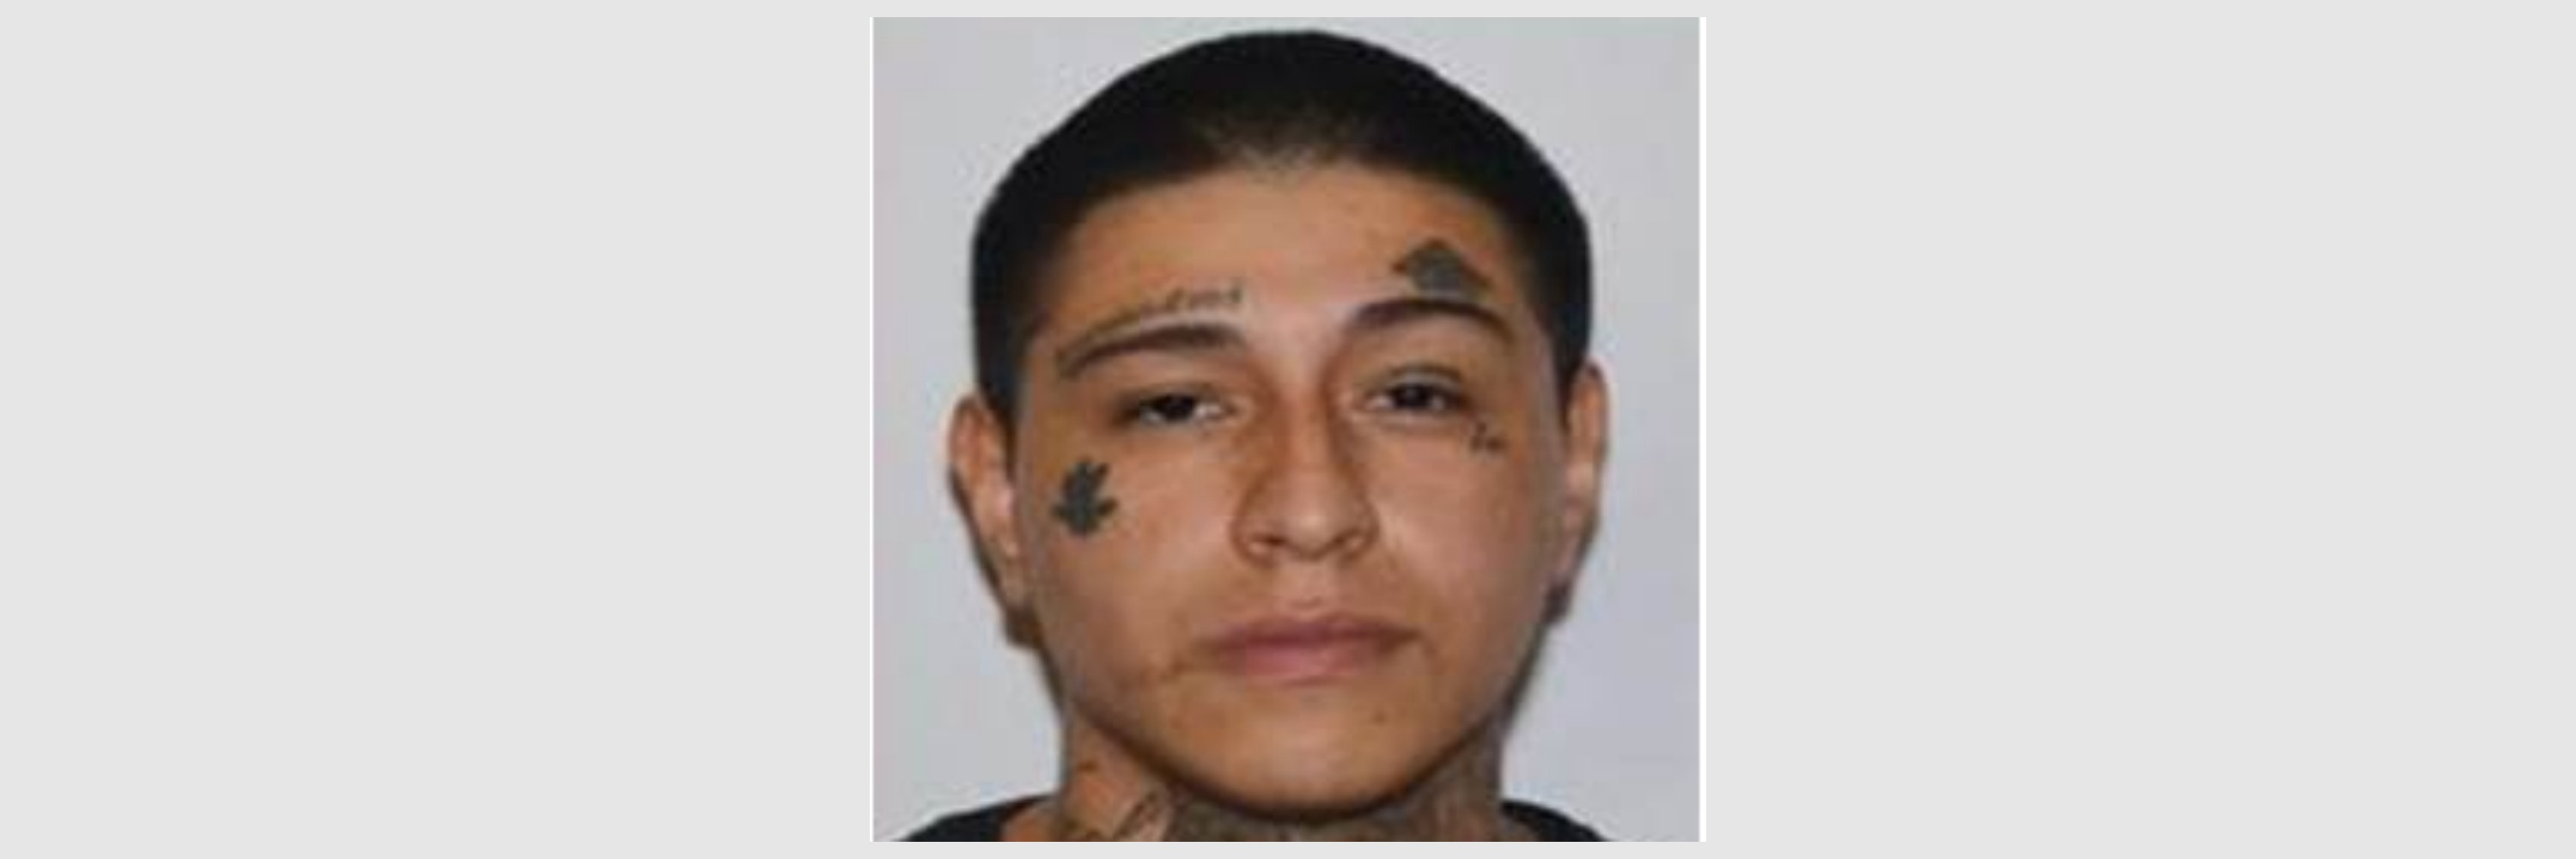 "Police say 22-year-old Cesar Morales is wanted for assault with a dangerous weapon. Police say Morales is between 5'2"" and 5'5"", Hispanic, with brown eyes, black hair and weighing about 150 pounds. (Photo: DC police)"